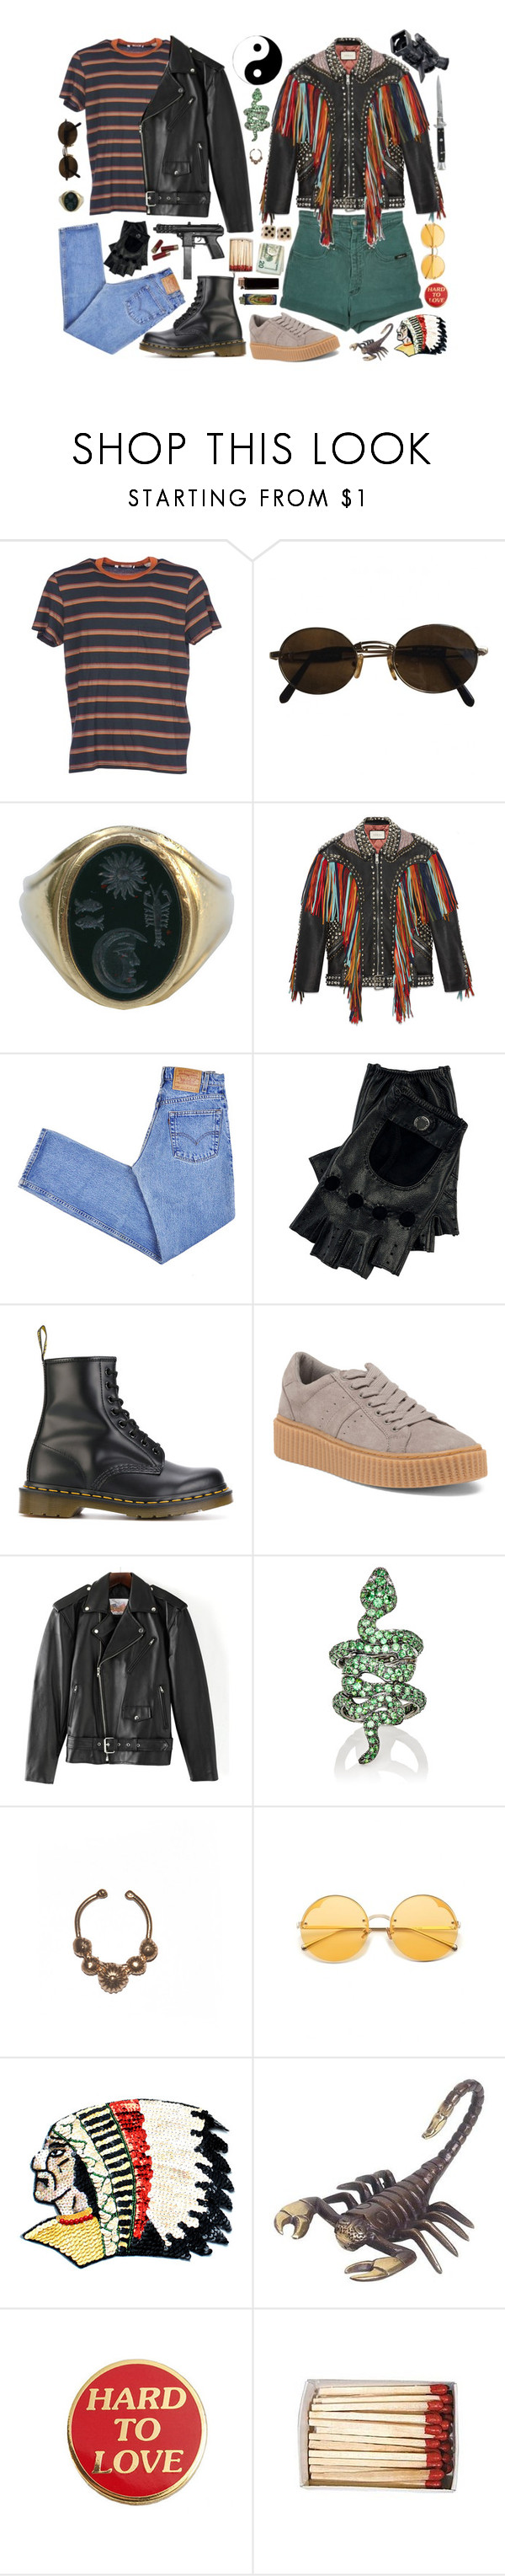 """""""mickey and mallory knox (NBK)"""" by trashbud ❤ liked on Polyvore featuring Levi's, Moschino, Kieselstein-Cord, Gucci, Dr. Martens, Excelled, Sidney Garber, Switchblade Stiletto, Panasonic and NOVICA"""